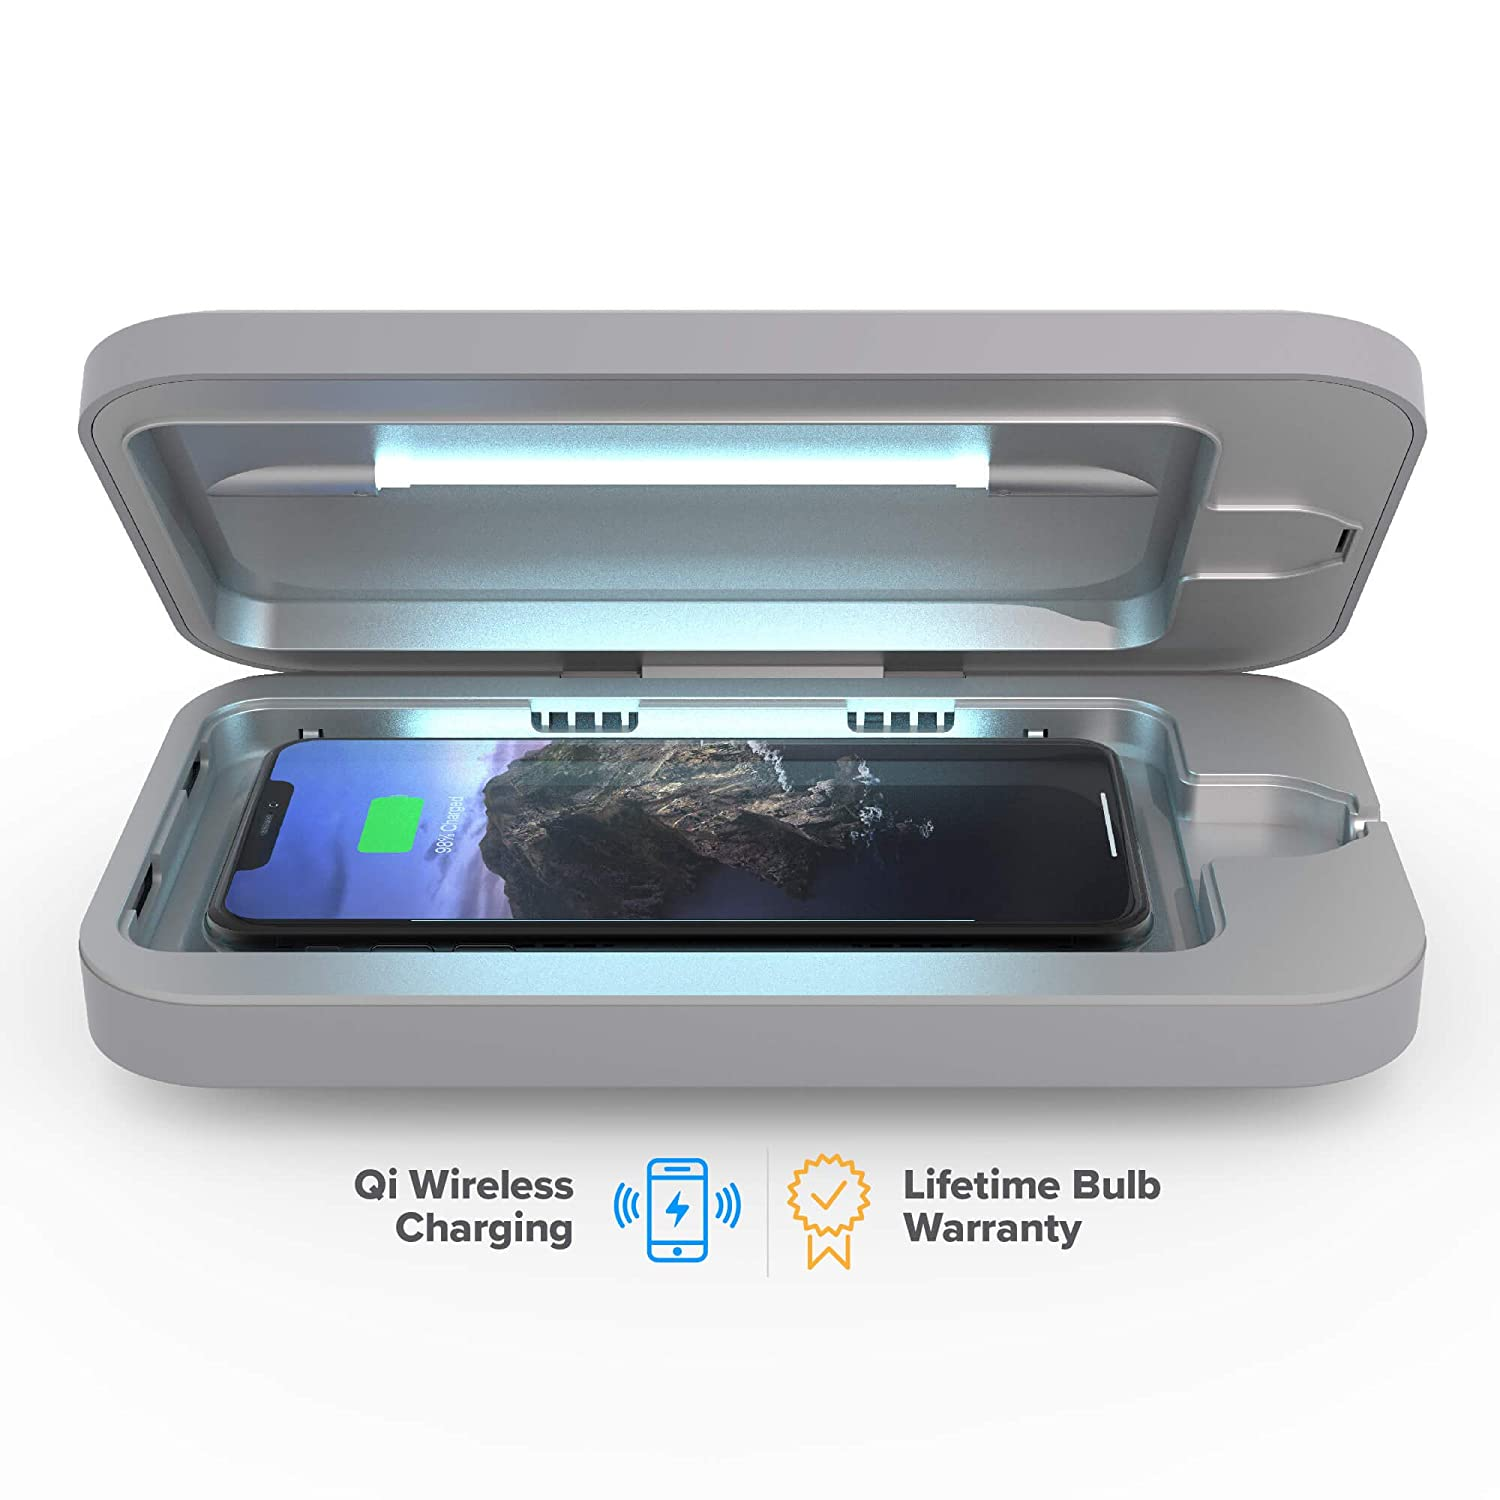 PhoneSoap Wireless UV Smartphone Sanitizer & Qi Charger | Patented & Clinically Proven UV Light Disinfector | Gunmetal Grey